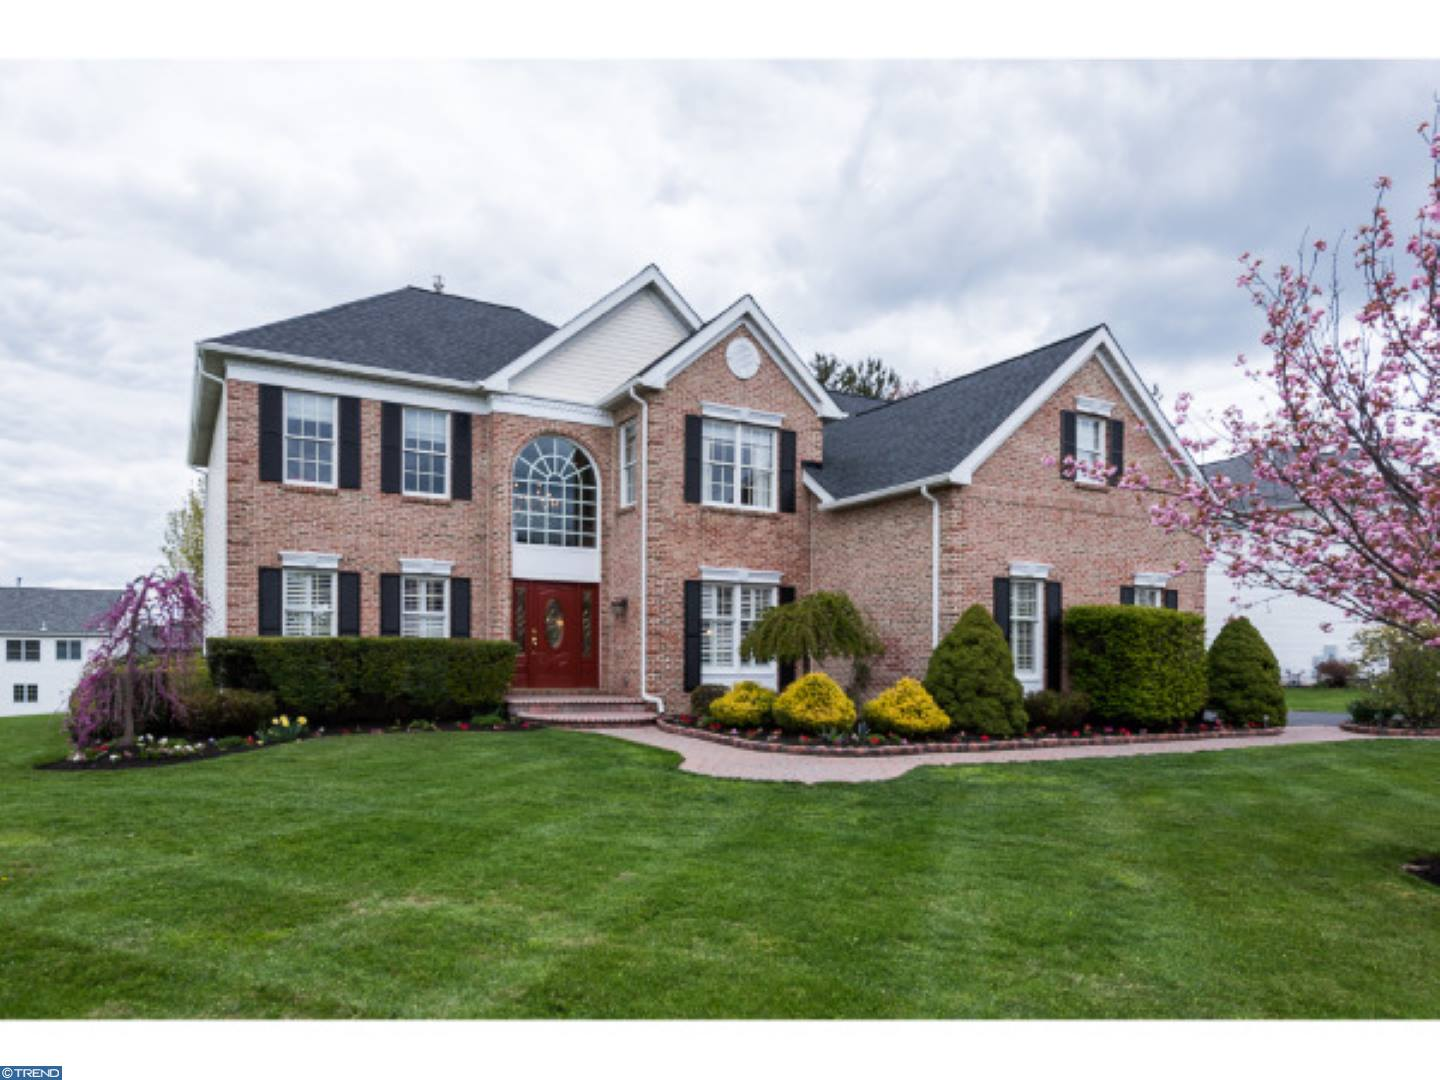 Colonial Ford Danbury Ct >> Live In Garnet Valley, PA   Five Star Professional Realtor ...